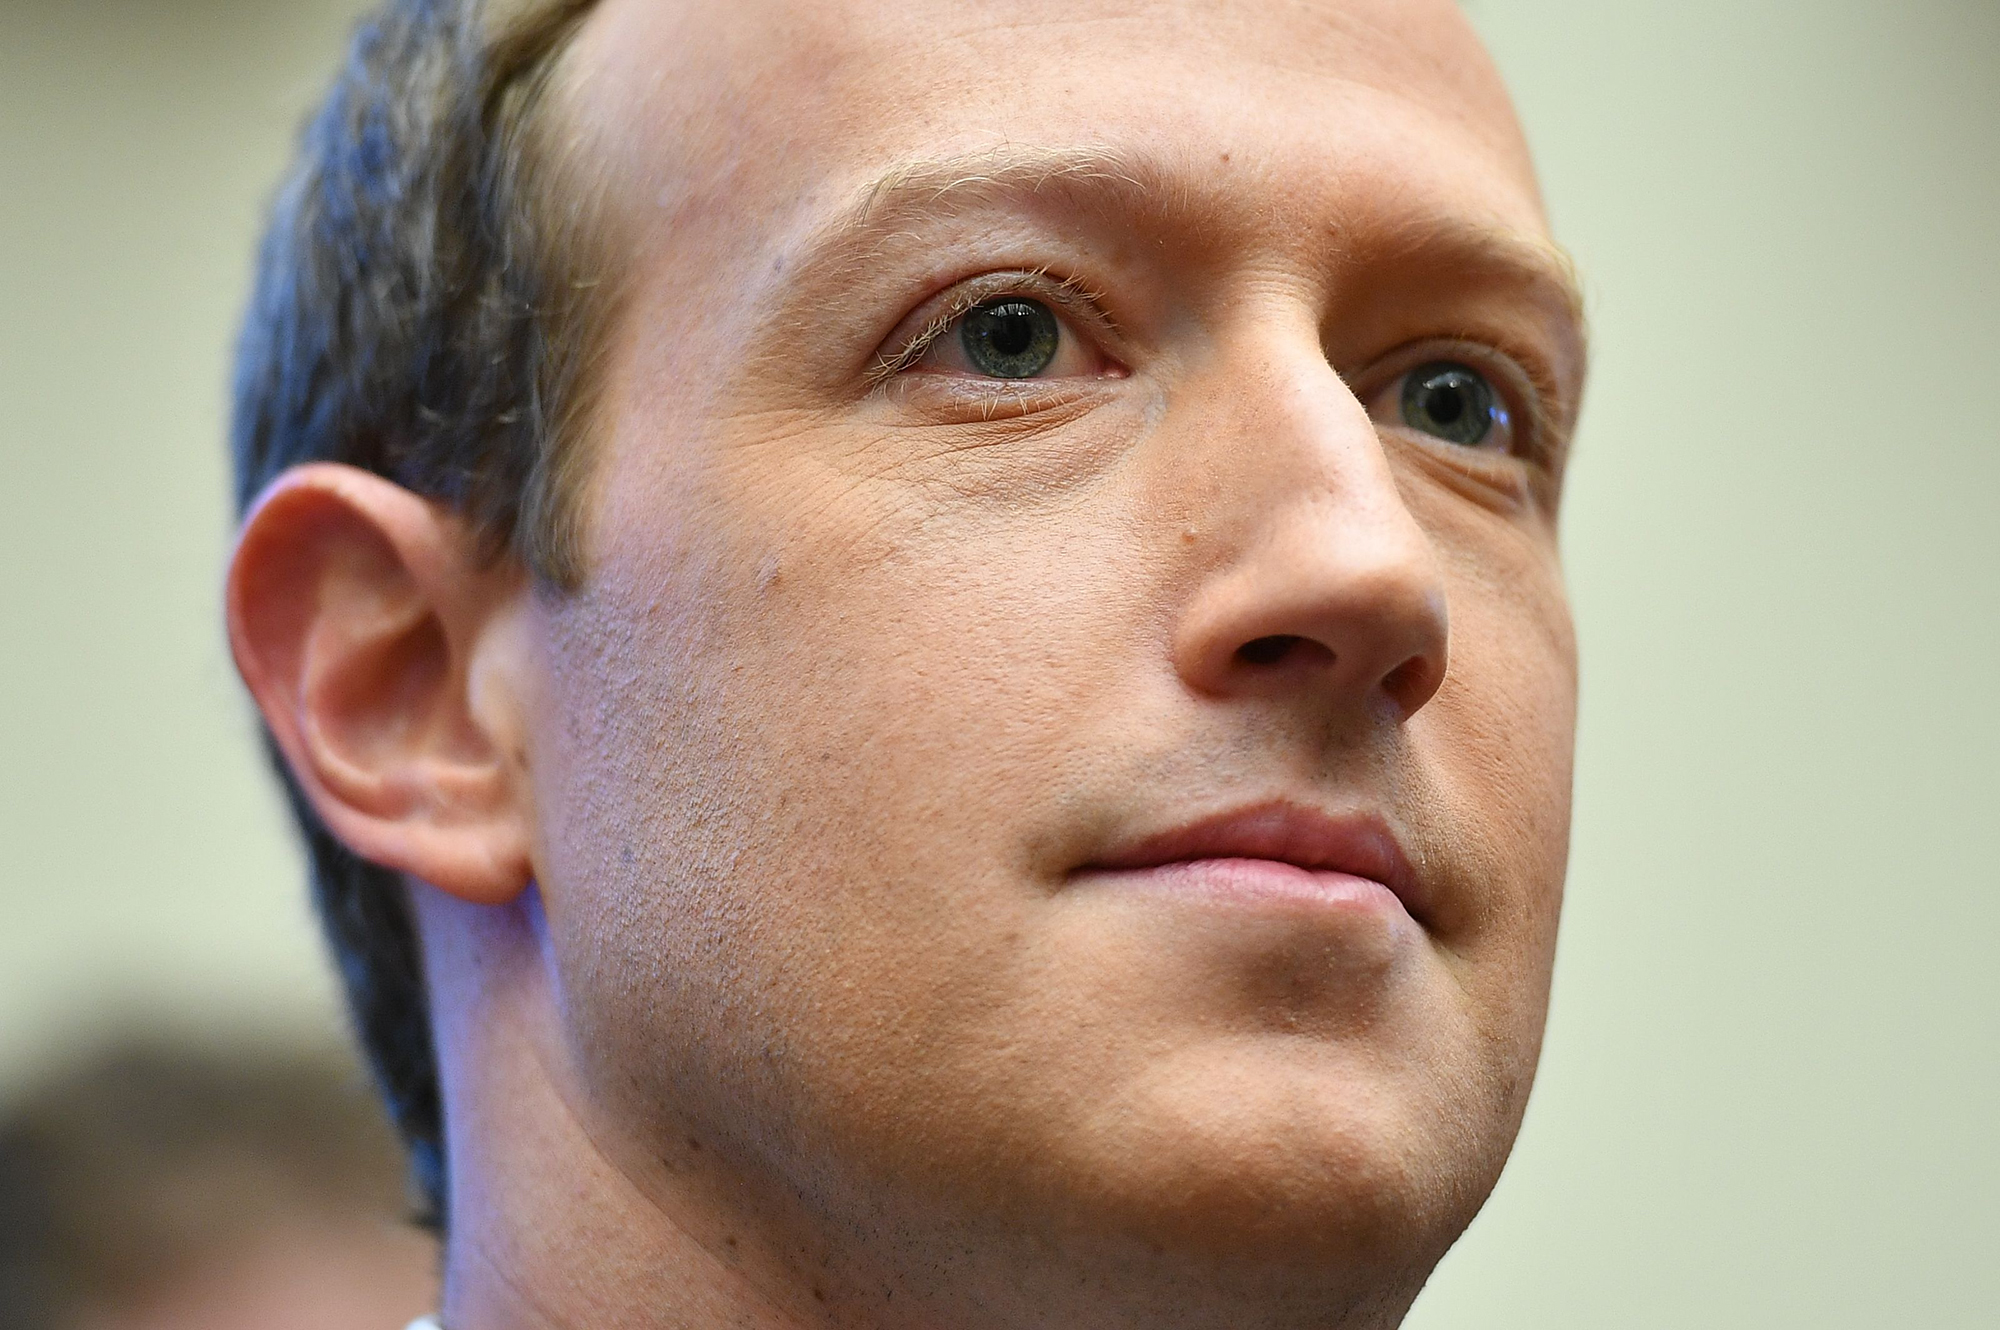 Facebook's Oversight Board is finally hearing cases, two years after it was first announced